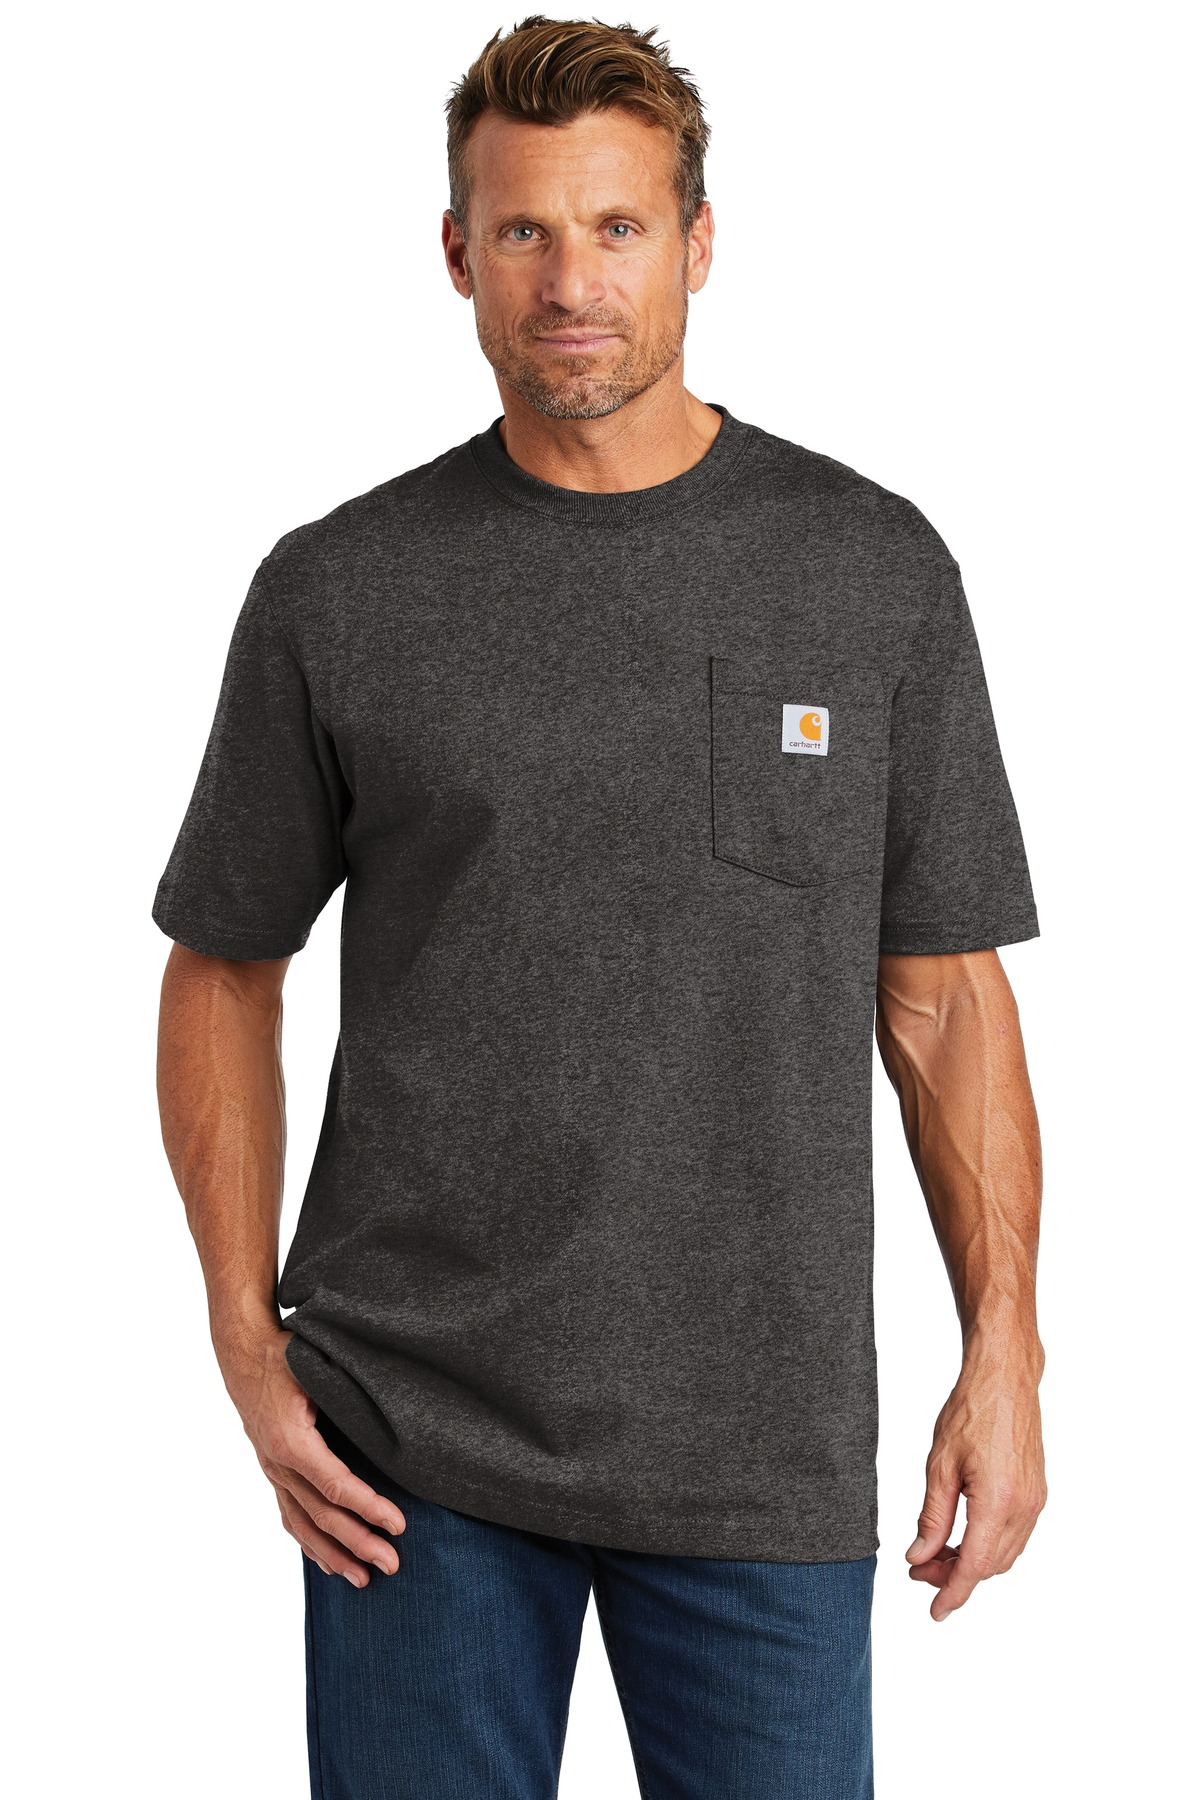 Carhartt  ®  Workwear Pocket Short Sleeve T-Shirt. CTK87 - Carbon Heather